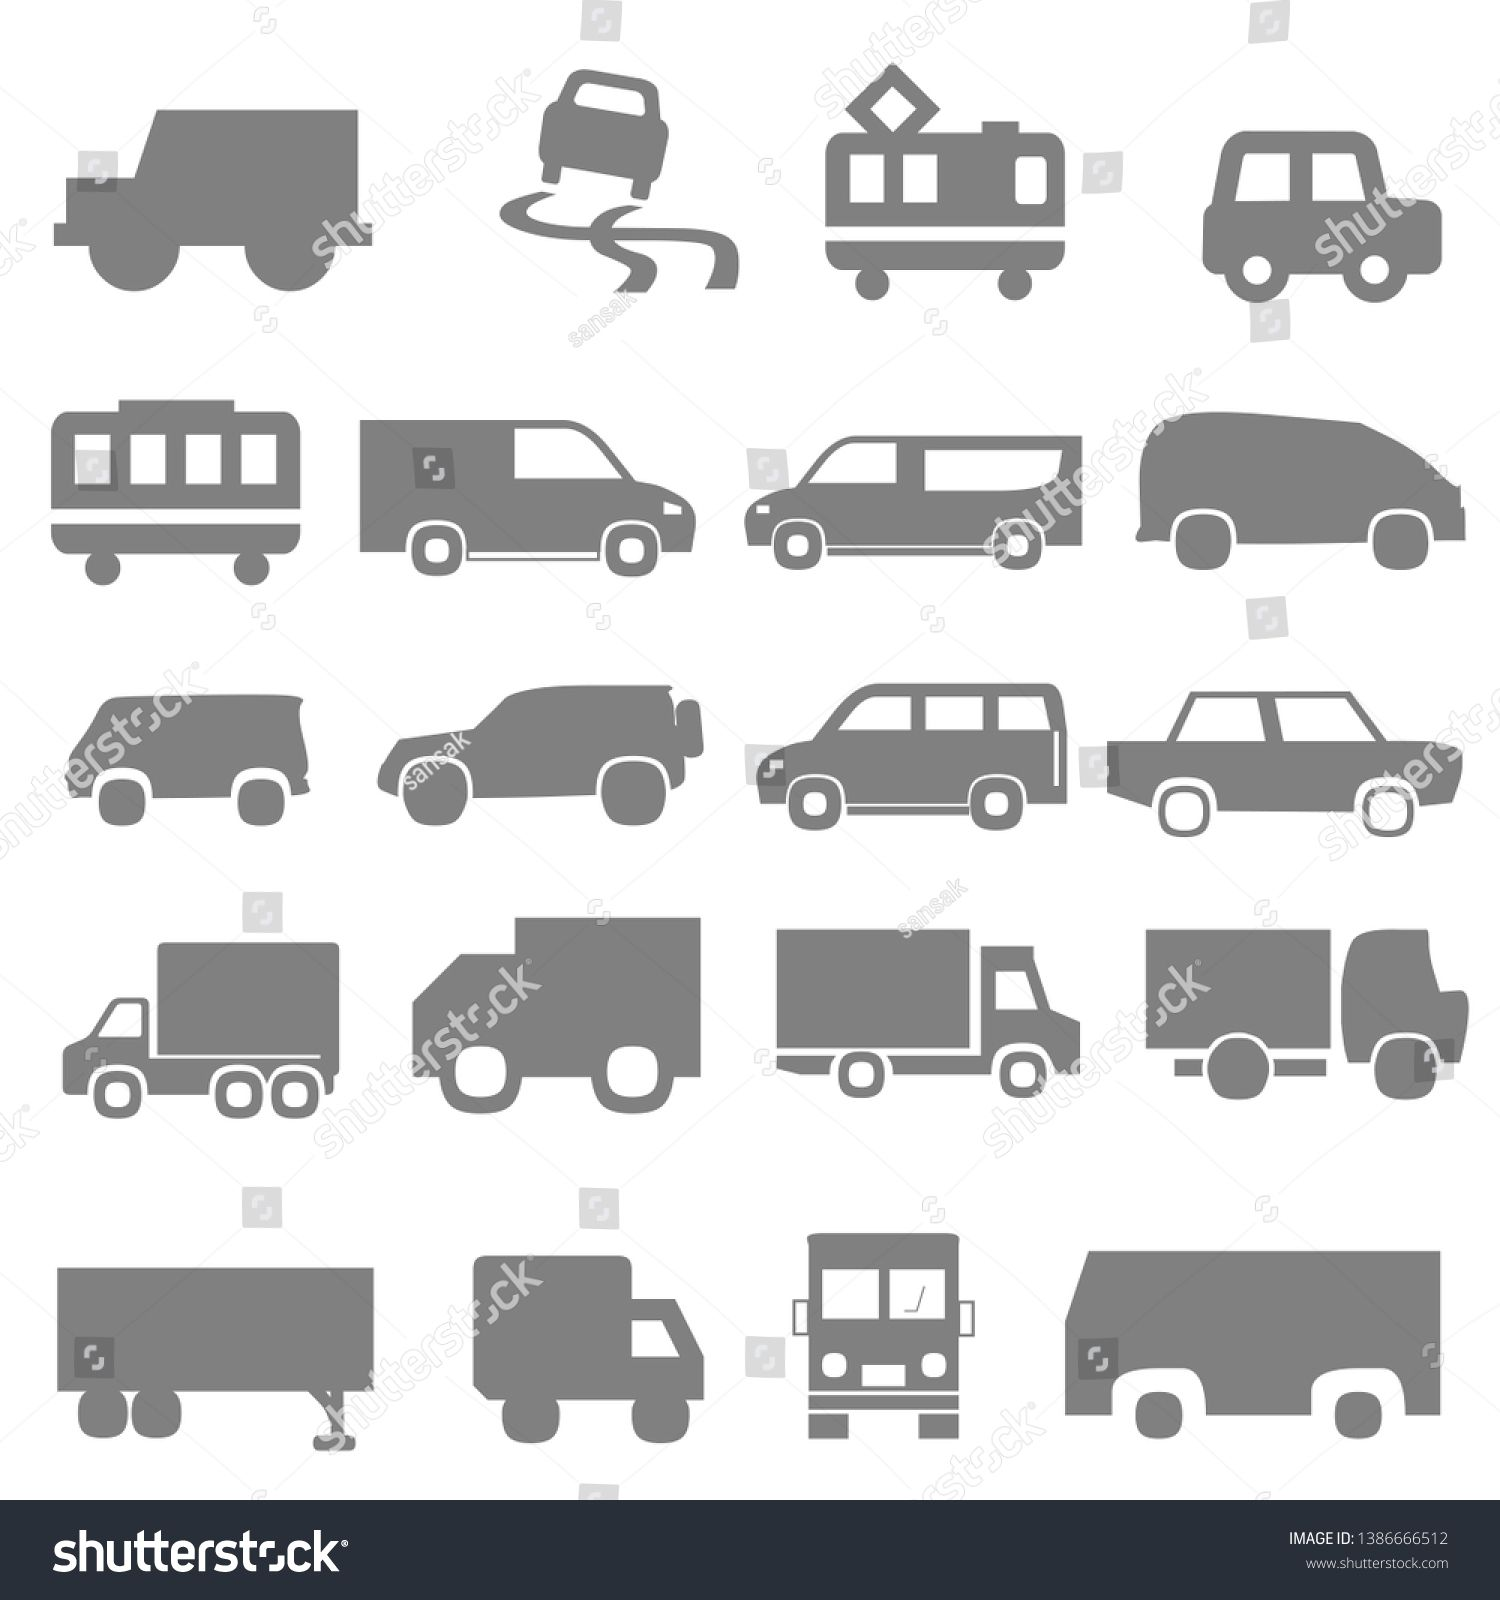 Transport icons. Airplane, Public bus, Train and auto